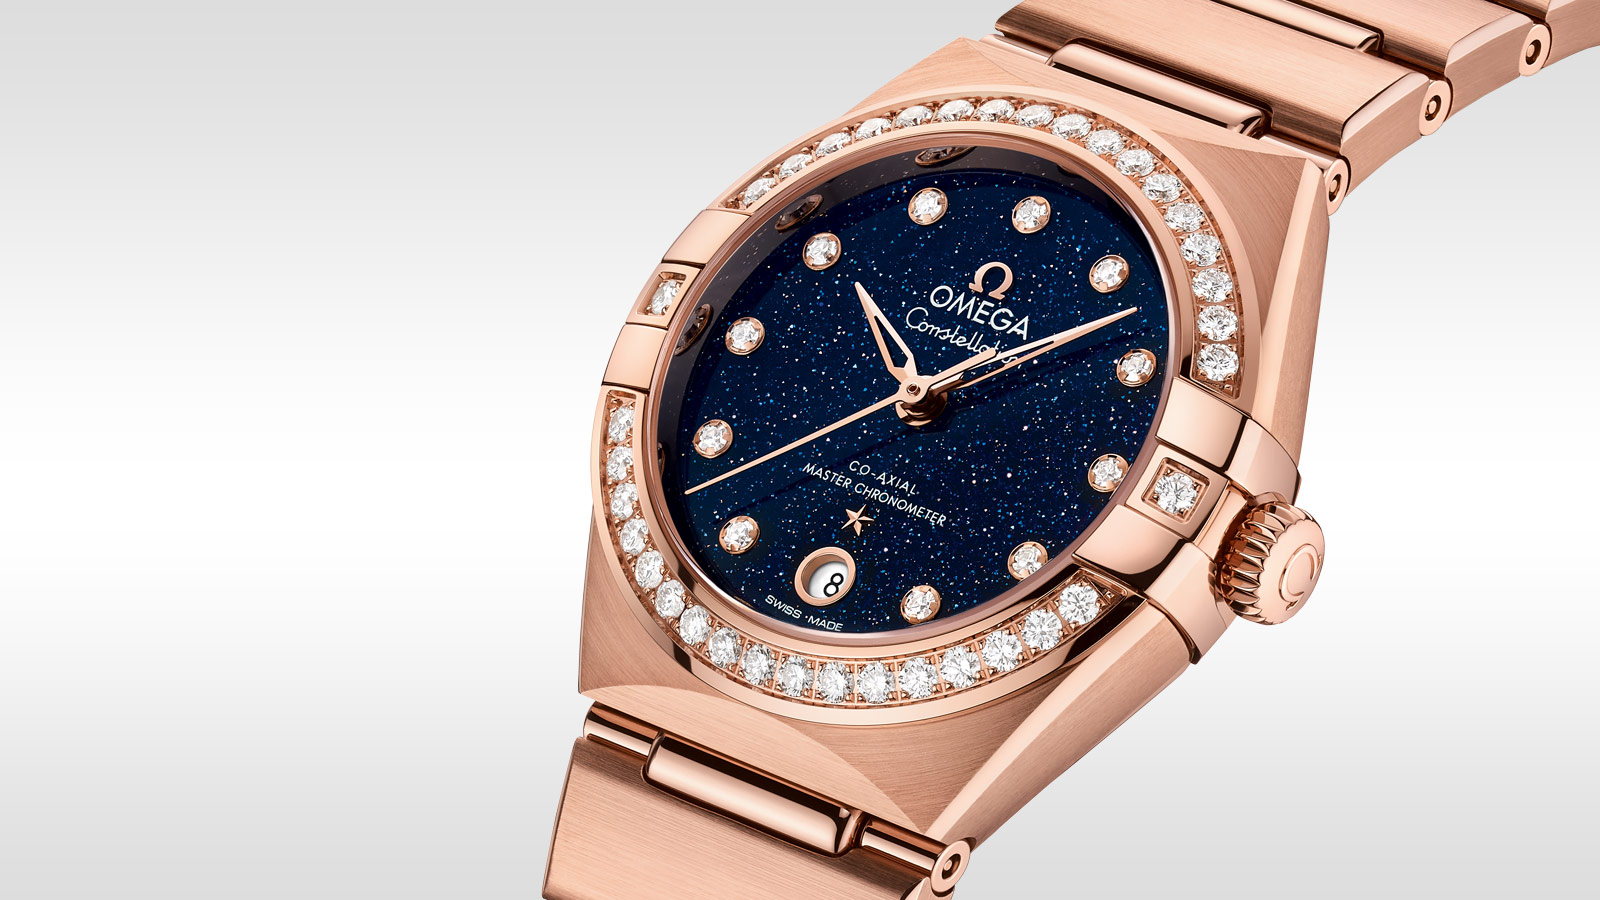 Constellation Constellation Manhattan Constellation Manhattan Omega Co‑Axial Master Chronometer 29 mm - 131.55.29.20.53.003 - View 2